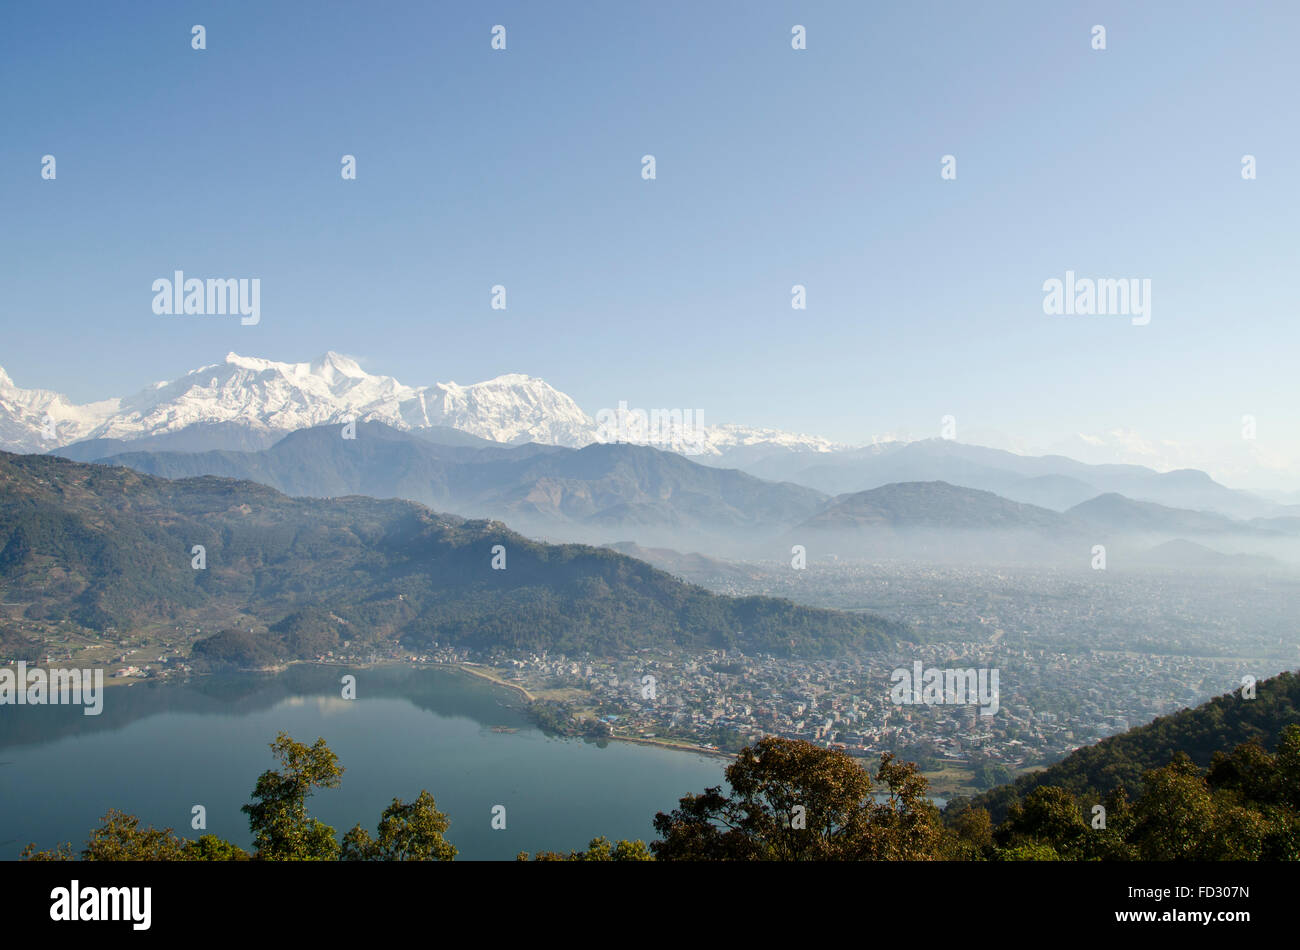 Machapuchare (Fish Tail Mountain),Annapurnas and phewa lake taken from Japanese peace pagoda, Pokhara, Nepal - Stock Image